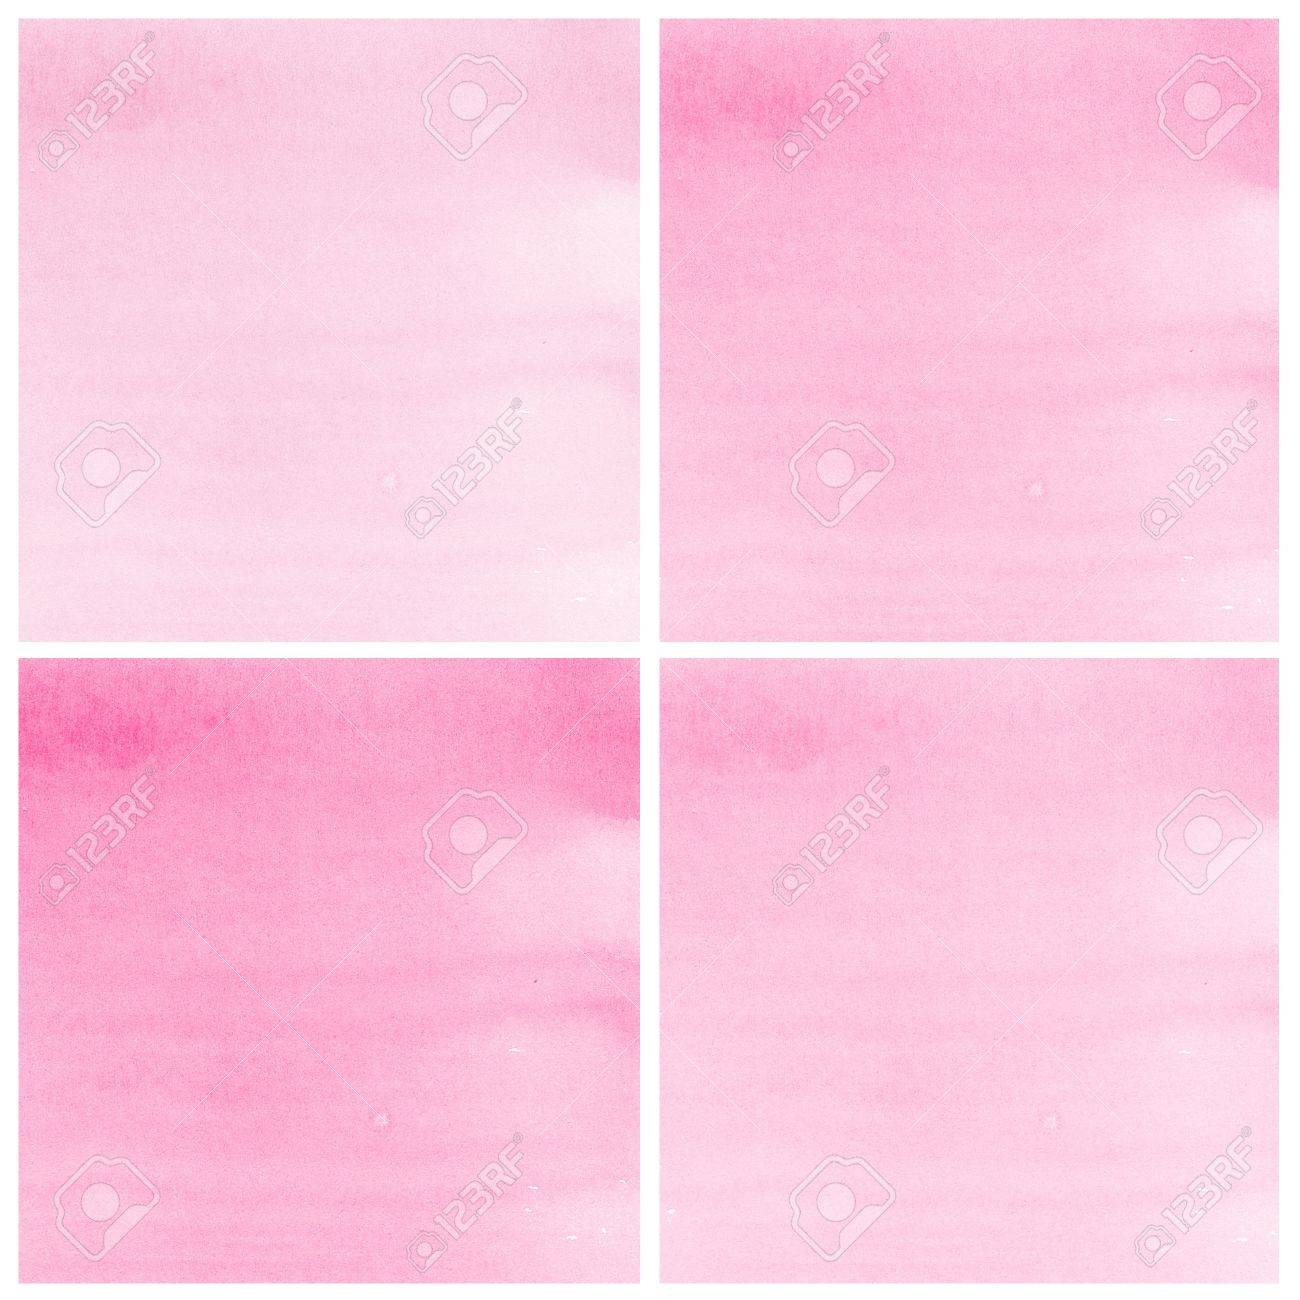 Set Of pink Abstract watercolor background Stock Photo - 15169622